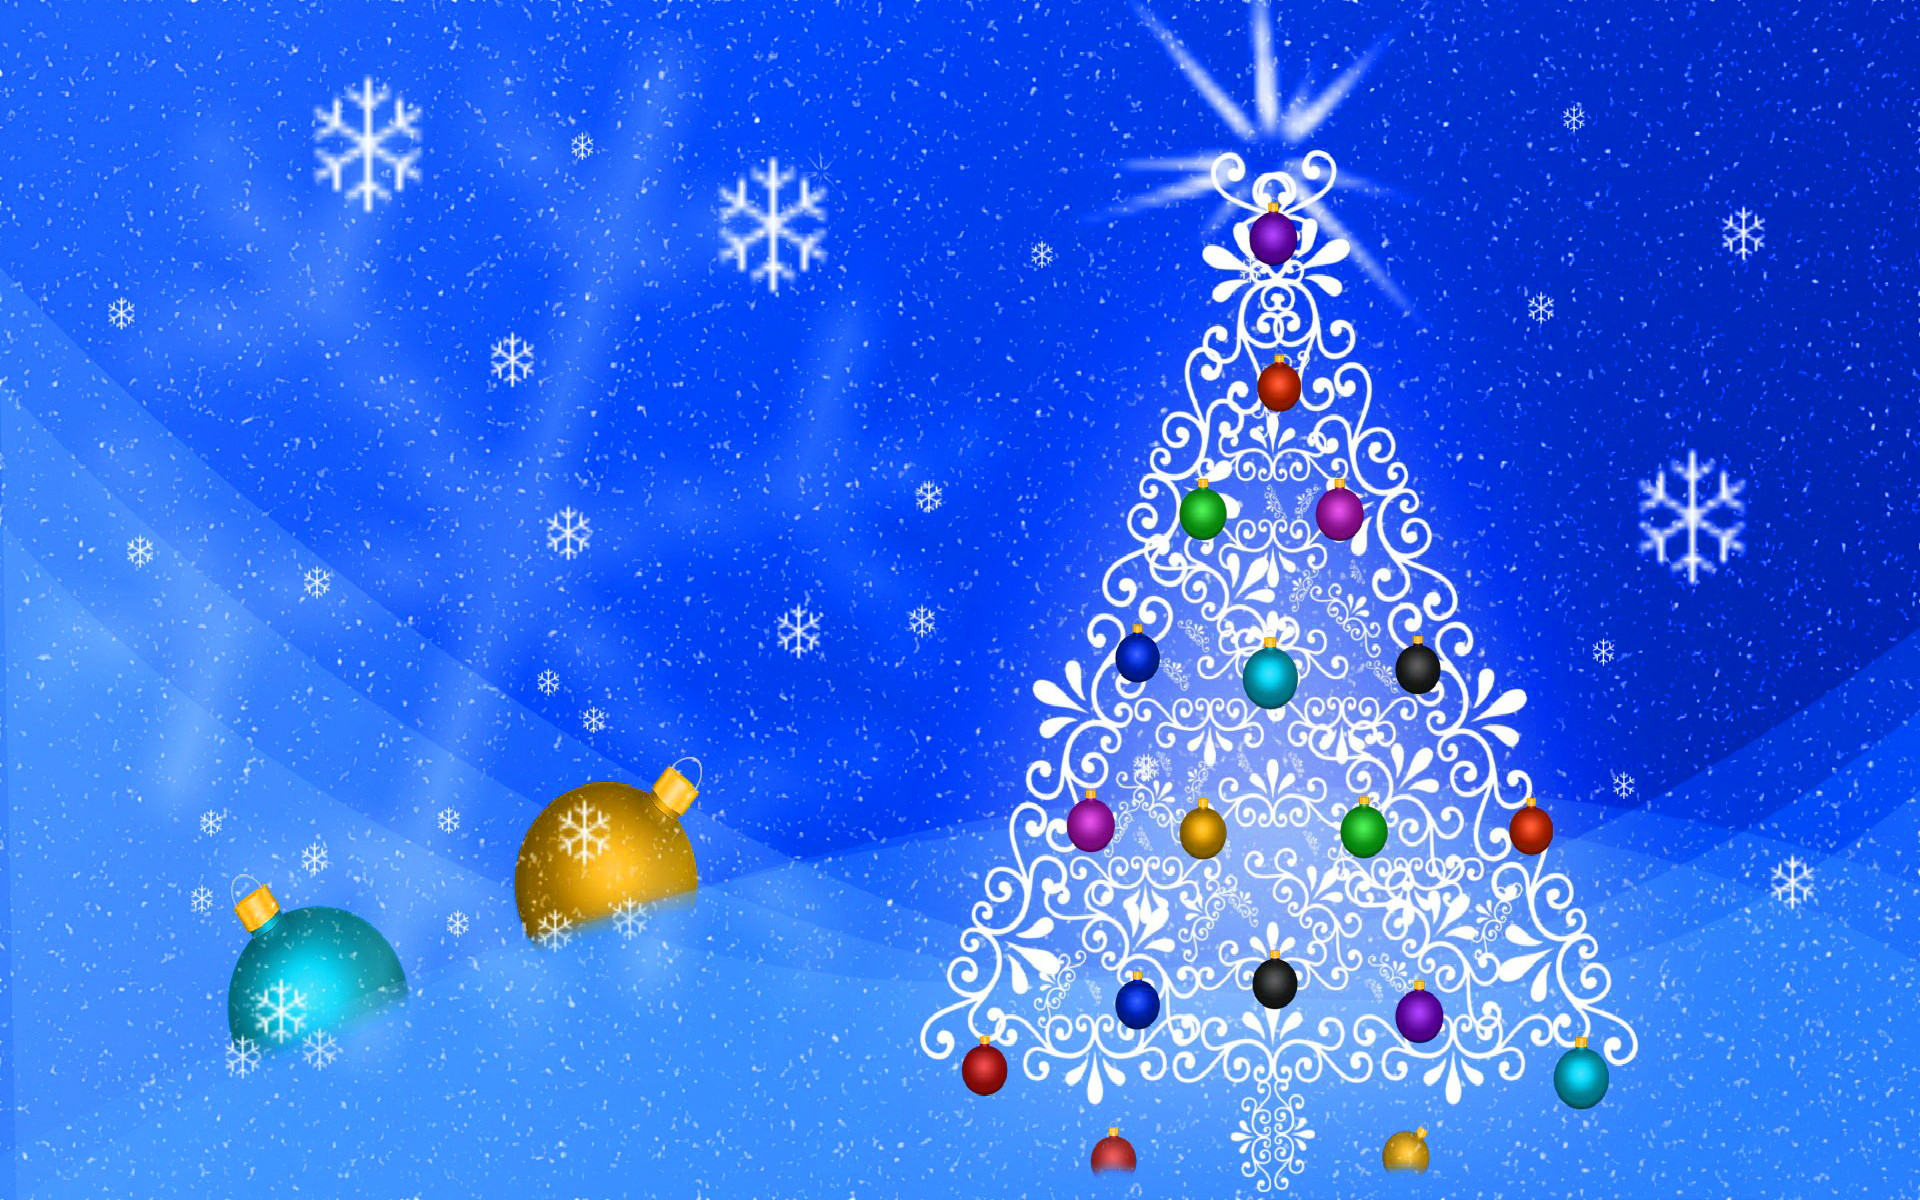 white christmas tree wallpaper - sf wallpaper